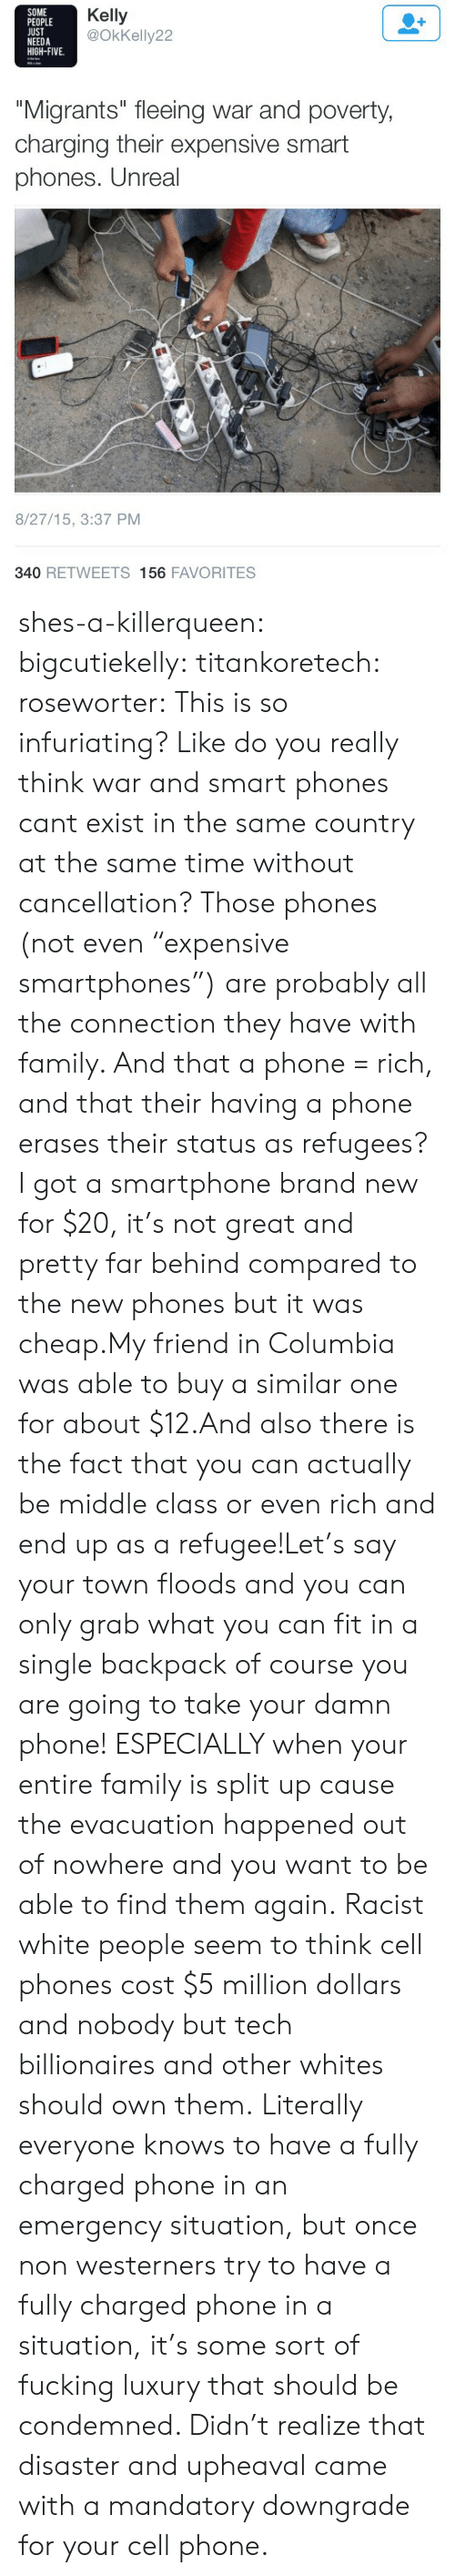 """mandatory: SOME  PEOPLE  UST  NEEDA  HIGH-FIVE.  Kelly  @OkKelly22  """"Migrants"""" fleeing war and poverty  charging their expensive smart  phones. Unreal  8/27/15, 3:37 PM  340 RETWEETS 156 FAVORITES shes-a-killerqueen:  bigcutiekelly:  titankoretech:  roseworter:  This is so infuriating? Like do you really think war and smart phones cant exist in the same country at the same time without cancellation? Those phones (not even """"expensive smartphones"""") are probably all the connection they have with family. And that a phone = rich, and that their having a phone erases their status as refugees?  I got a smartphone brand new for $20, it's not great and pretty far behind compared to the new phones but it was cheap.My friend in Columbia was able to buy a similar one for about $12.And also there is the fact that you can actually be middle class or even rich and end up as a refugee!Let's say your town floods and you can only grab what you can fit in a single backpack of course you are going to take your damn phone! ESPECIALLY when your entire family is split up cause the evacuation happened out of nowhere and you want to be able to find them again.  Racist white people seem to think cell phones cost $5 million dollars and nobody but tech billionaires and other whites should own them.   Literally everyone knows to have a fully charged phone in an emergency situation, but once non westerners try to have a fully charged phone in a situation, it's some sort of fucking luxury that should be condemned. Didn't realize that disaster and upheaval came with a mandatory downgrade for your cell phone."""